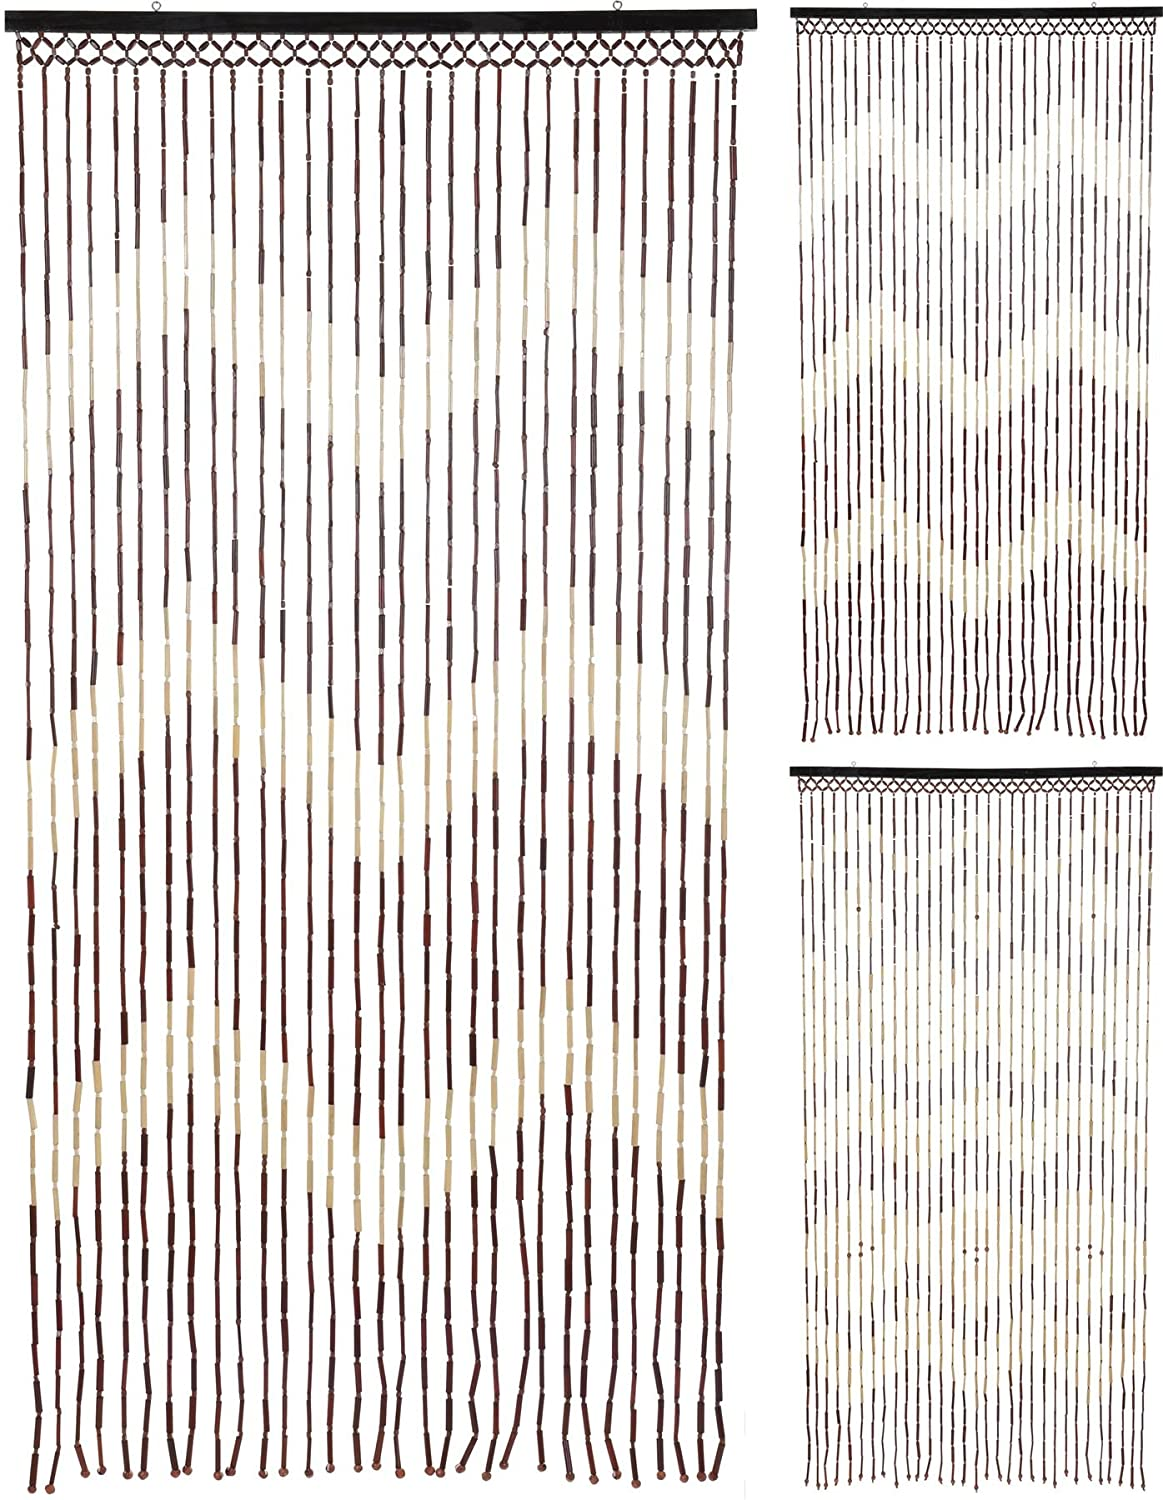 Carousel Home and Gifts Natural Beaded Bamboo Hanging Patterned Fly Insect Screen Door Curtain 90x180cm ~ Design Varies